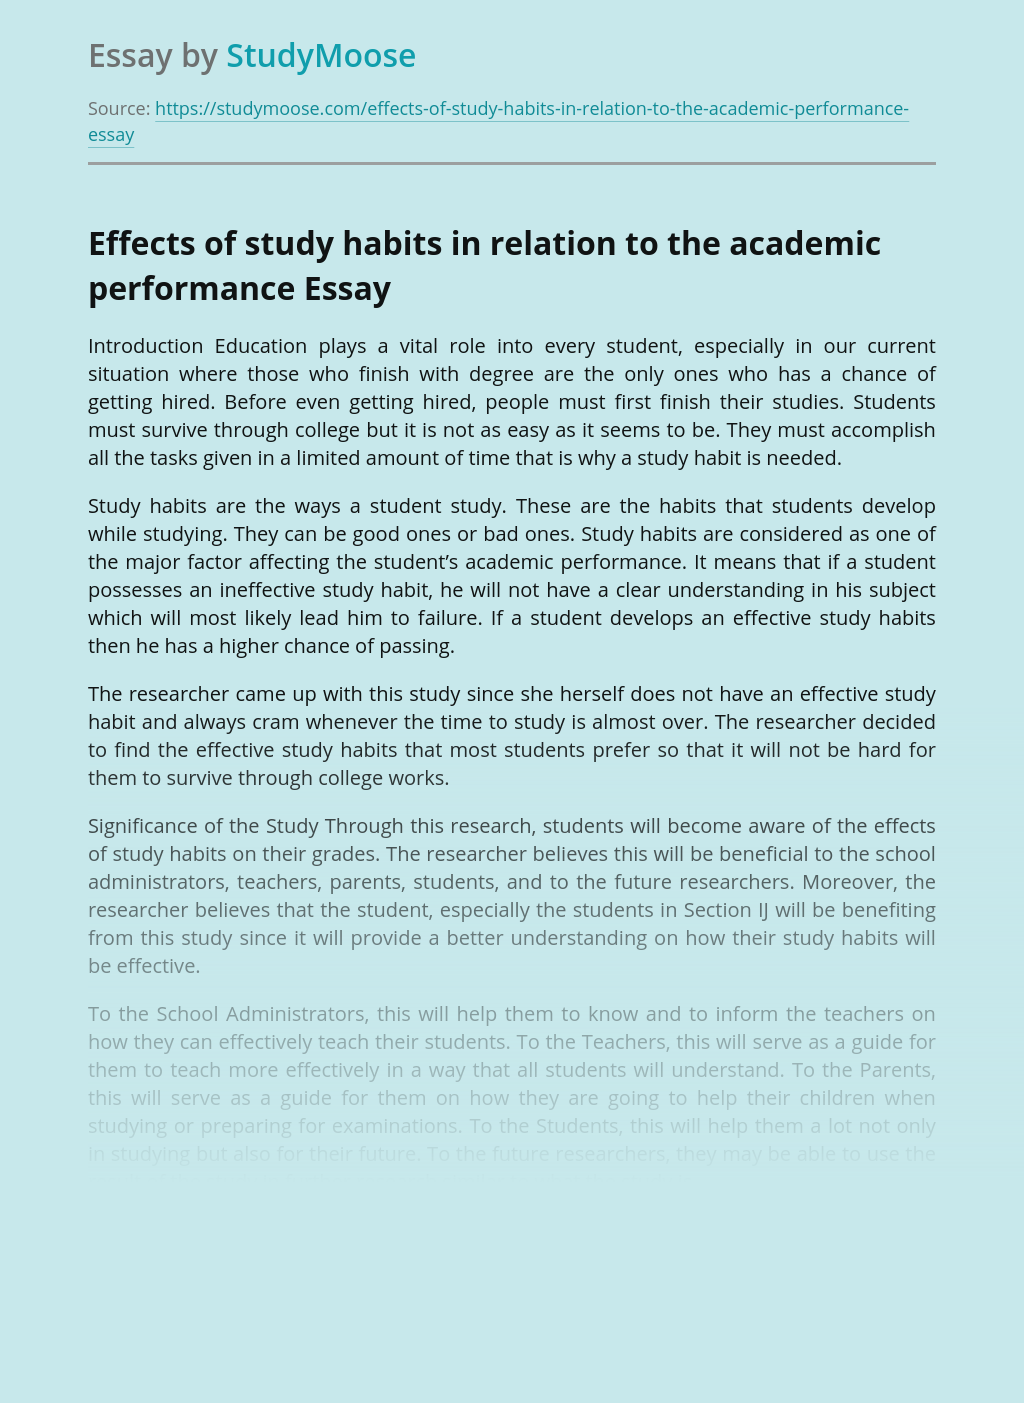 Effects of study habits in relation to the academic performance